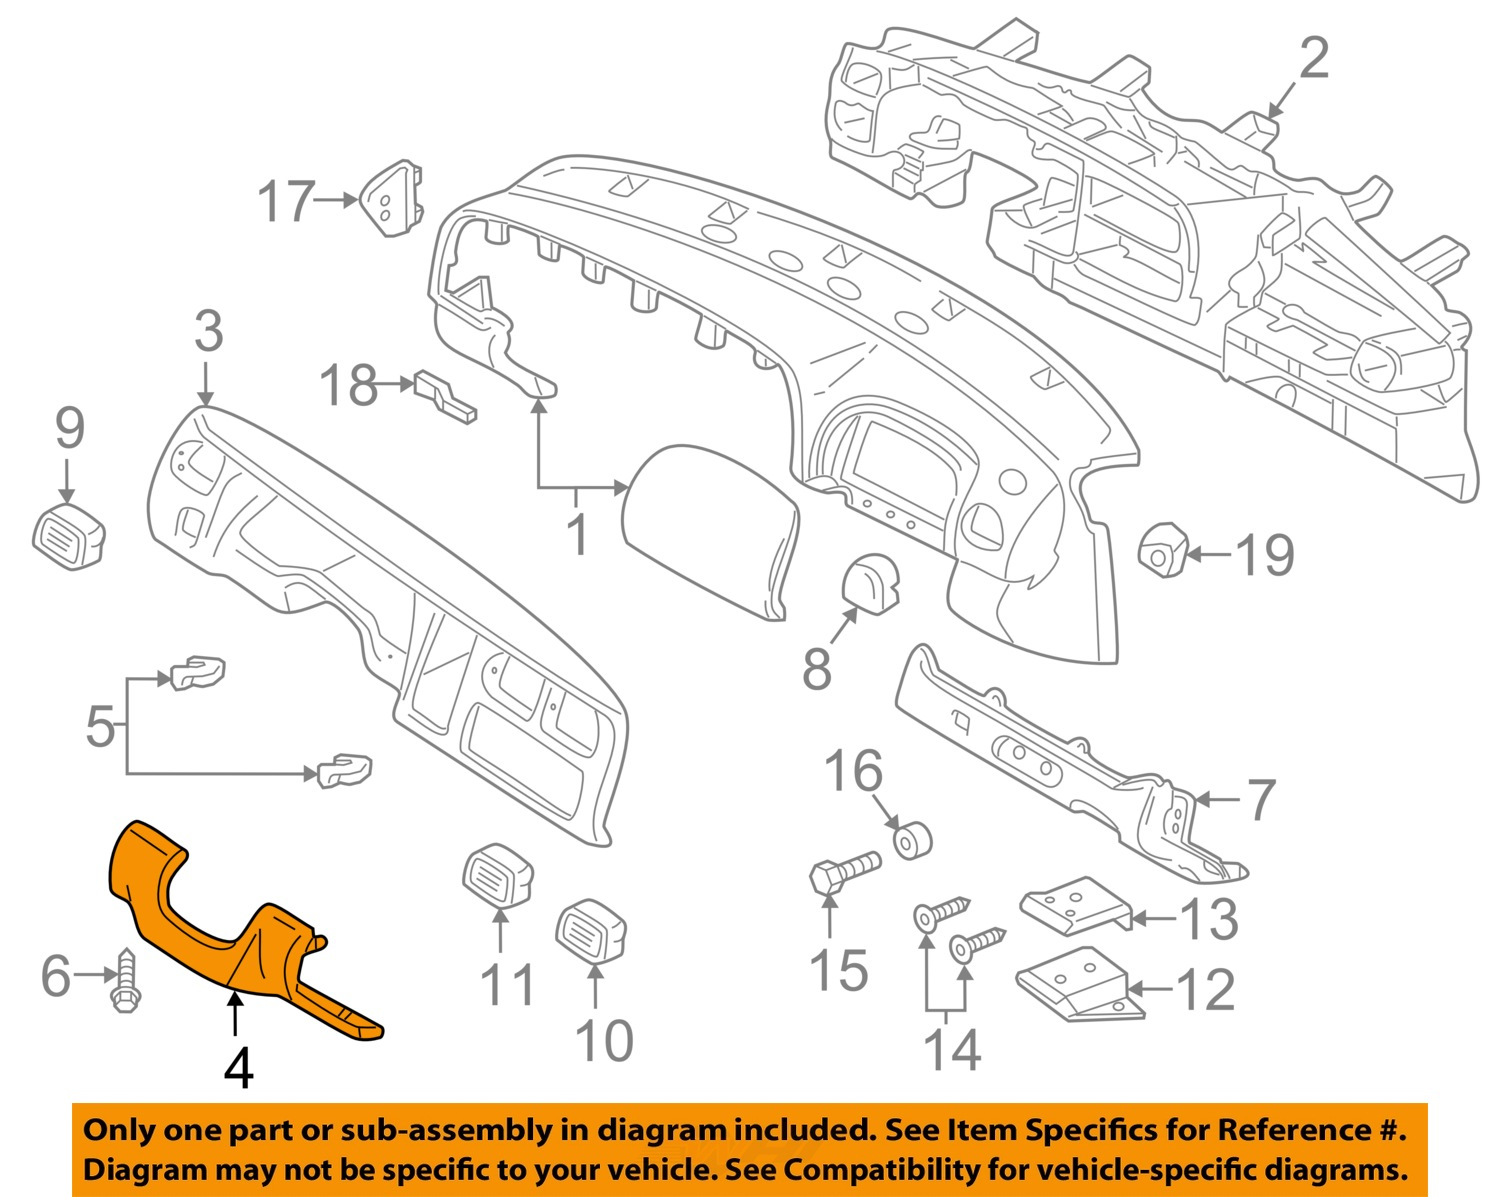 2006 Honda Ridgeline Fuse Box Replacement Detailed Schematics Diagram Heater Core Search For Wiring Diagrams U2022 2008 Avenger Manual Book Details